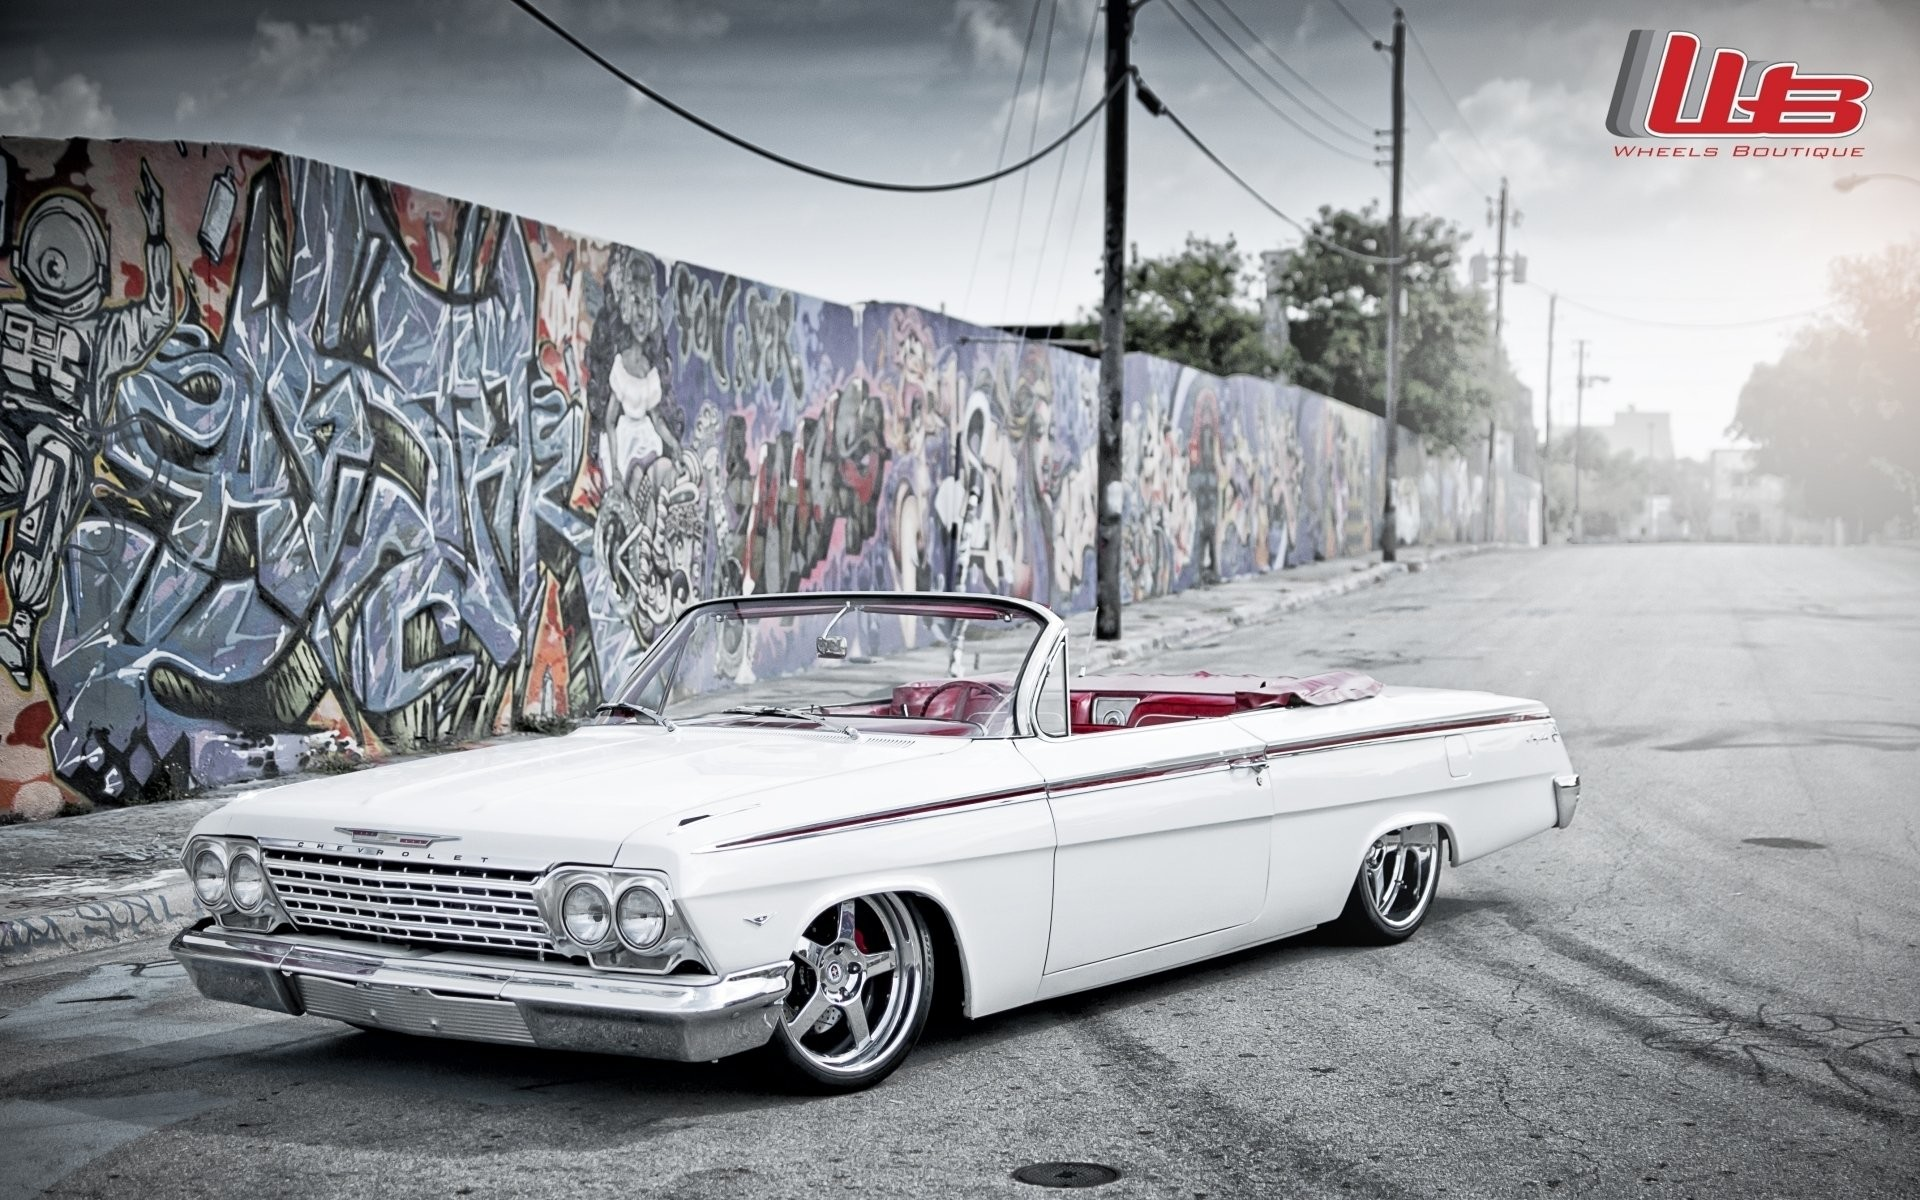 1920x1200 118 Lowrider HD Wallpapers | Backgrounds - Wallpaper Abyss